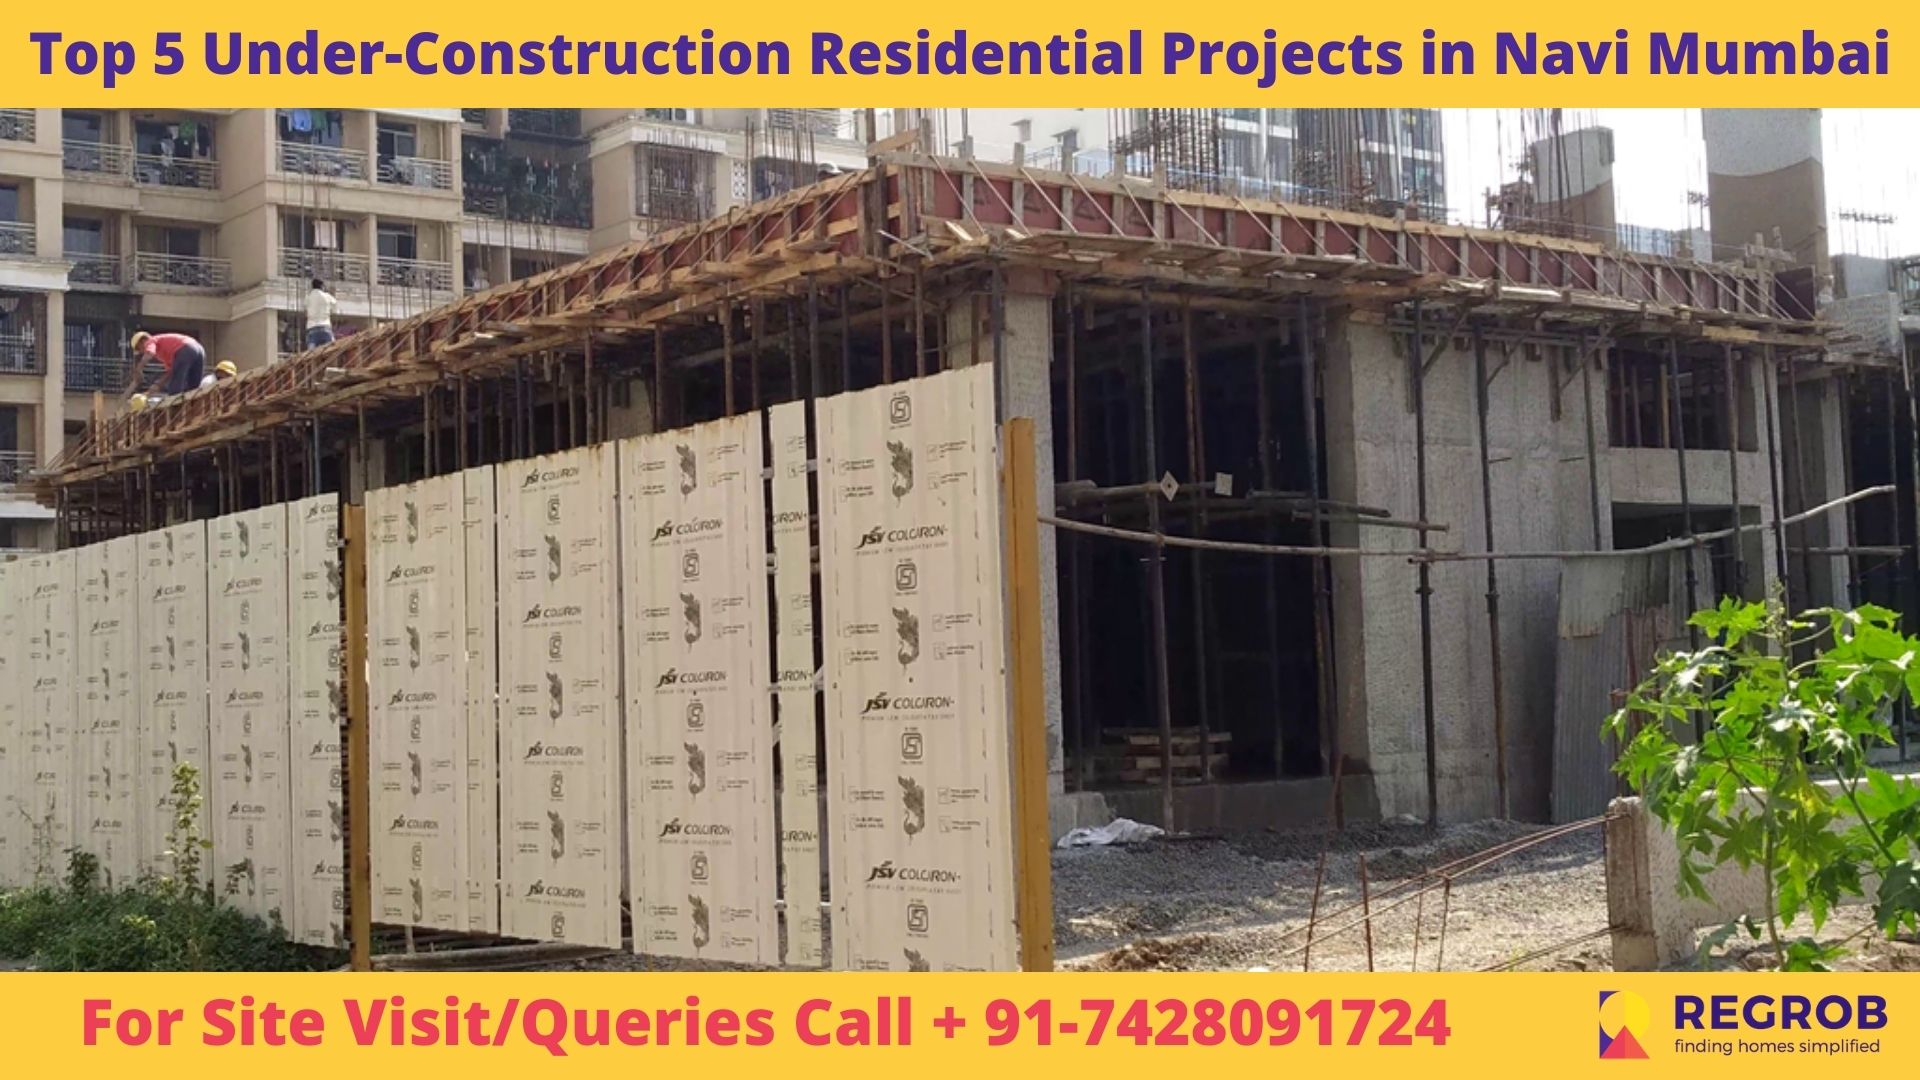 Top 5 Under-Construction Residential Projects in Navi Mumbai